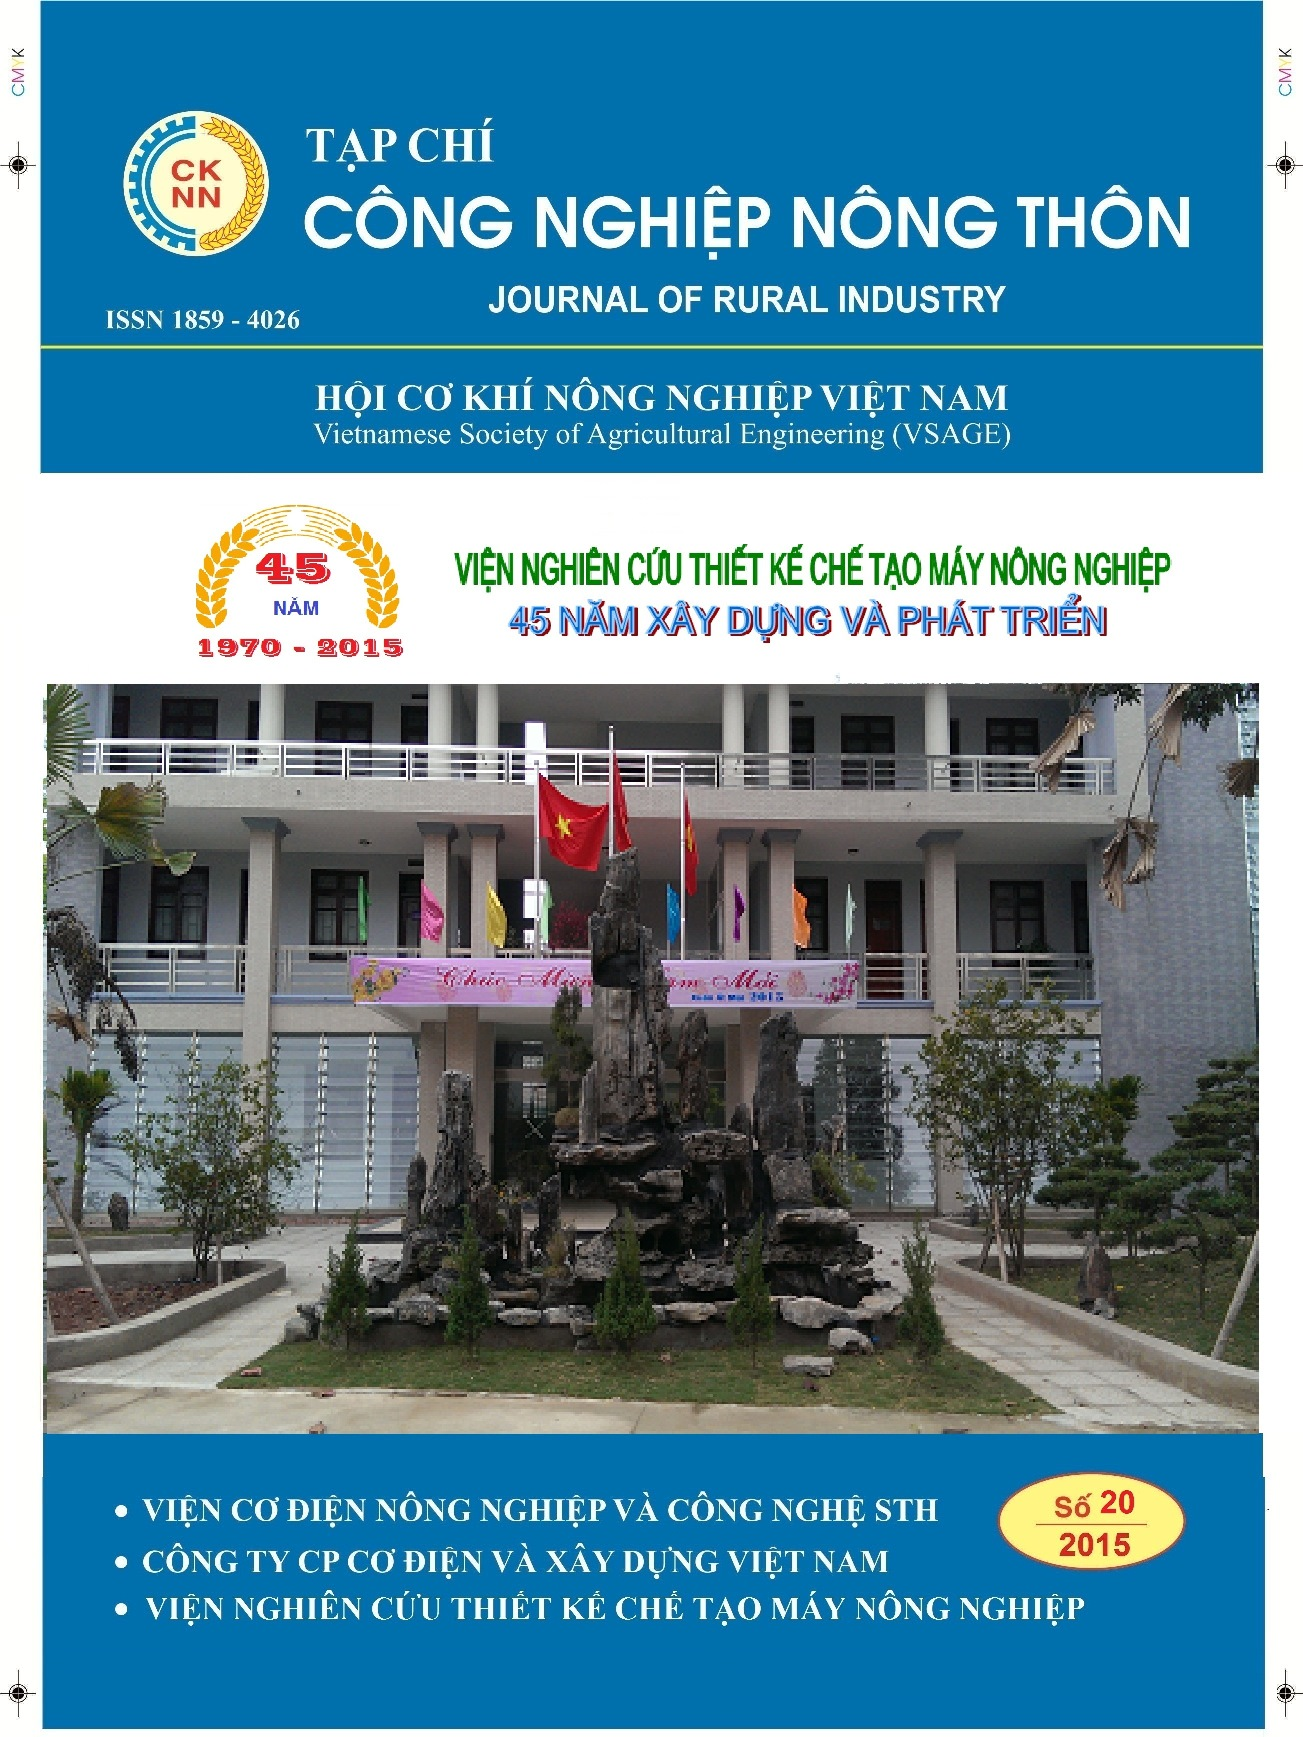 Tap chi cong nghiep nong thon so 20 -2015